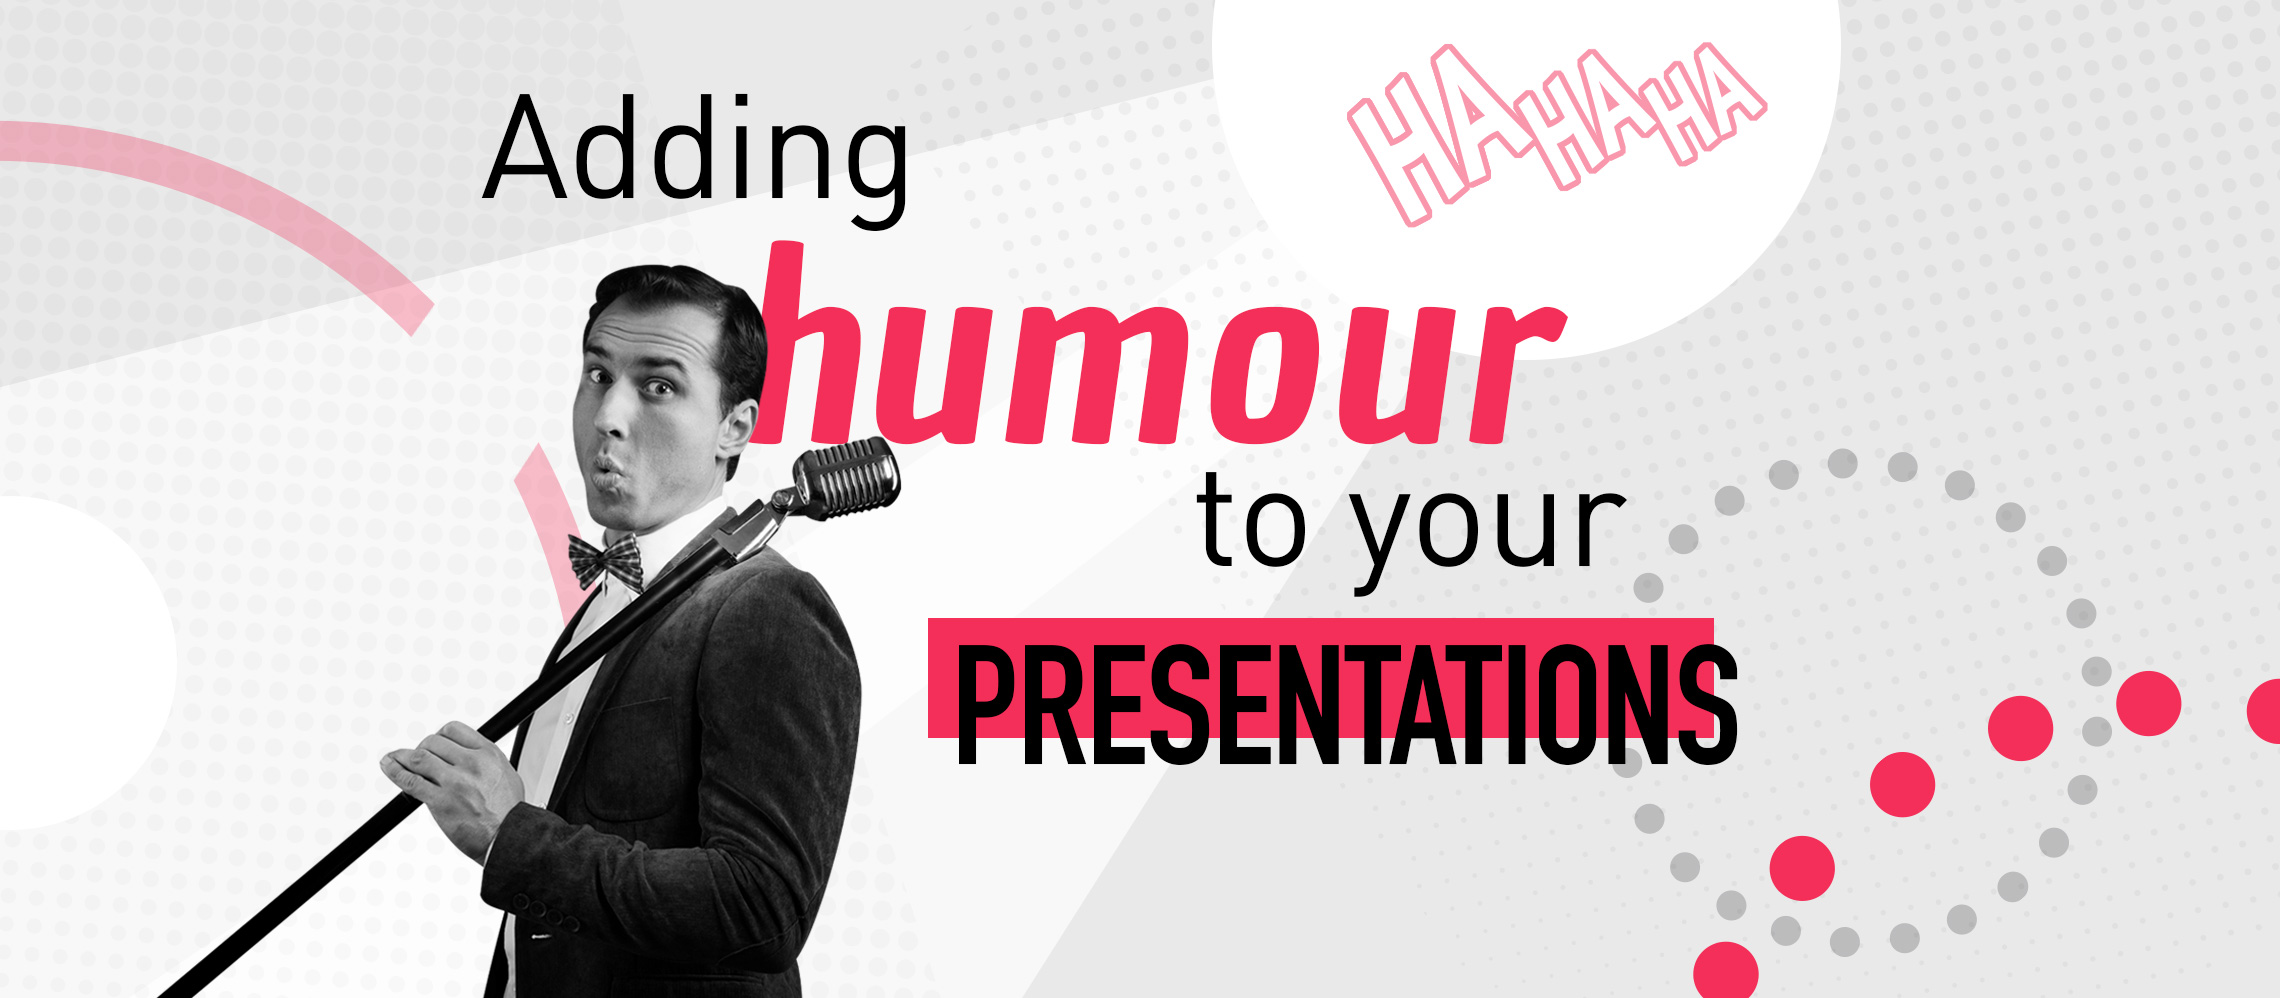 How to add humour to a presentation | Incorporate humour into speech